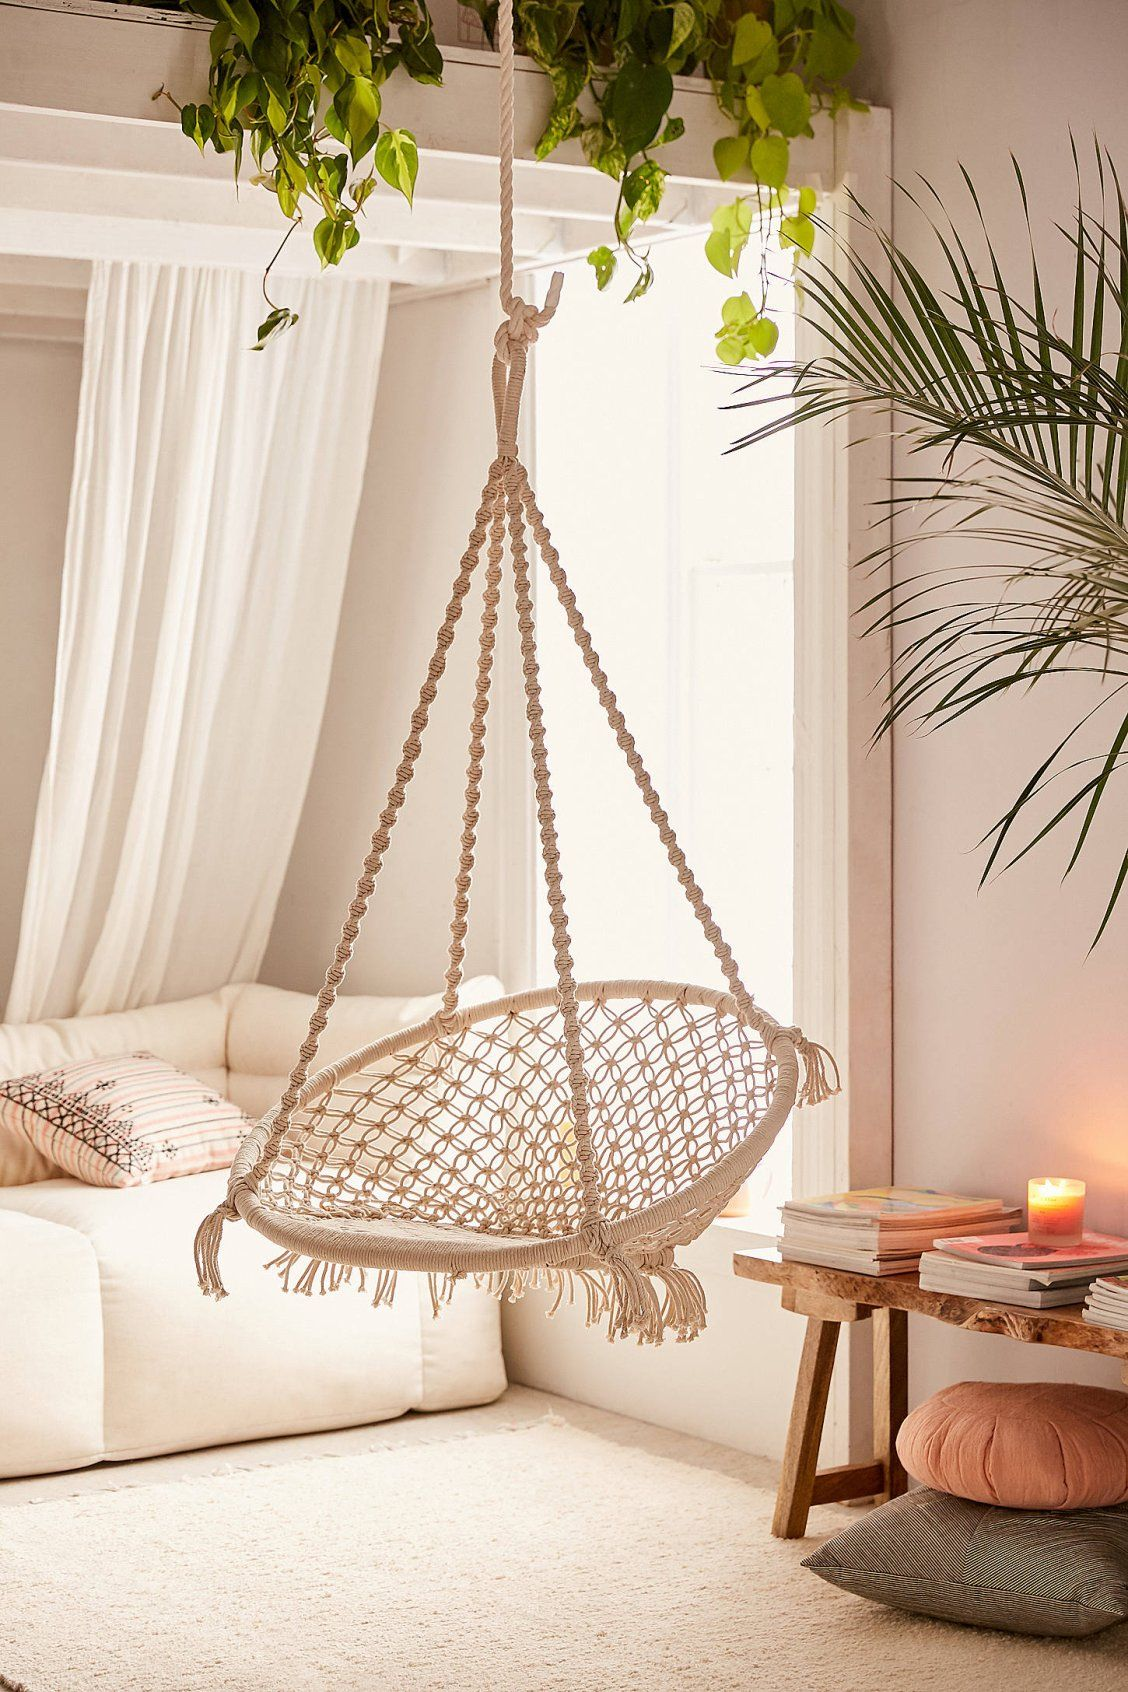 Meadow Macrame Hanging Chair Urban Outfitters Macrame Hanging